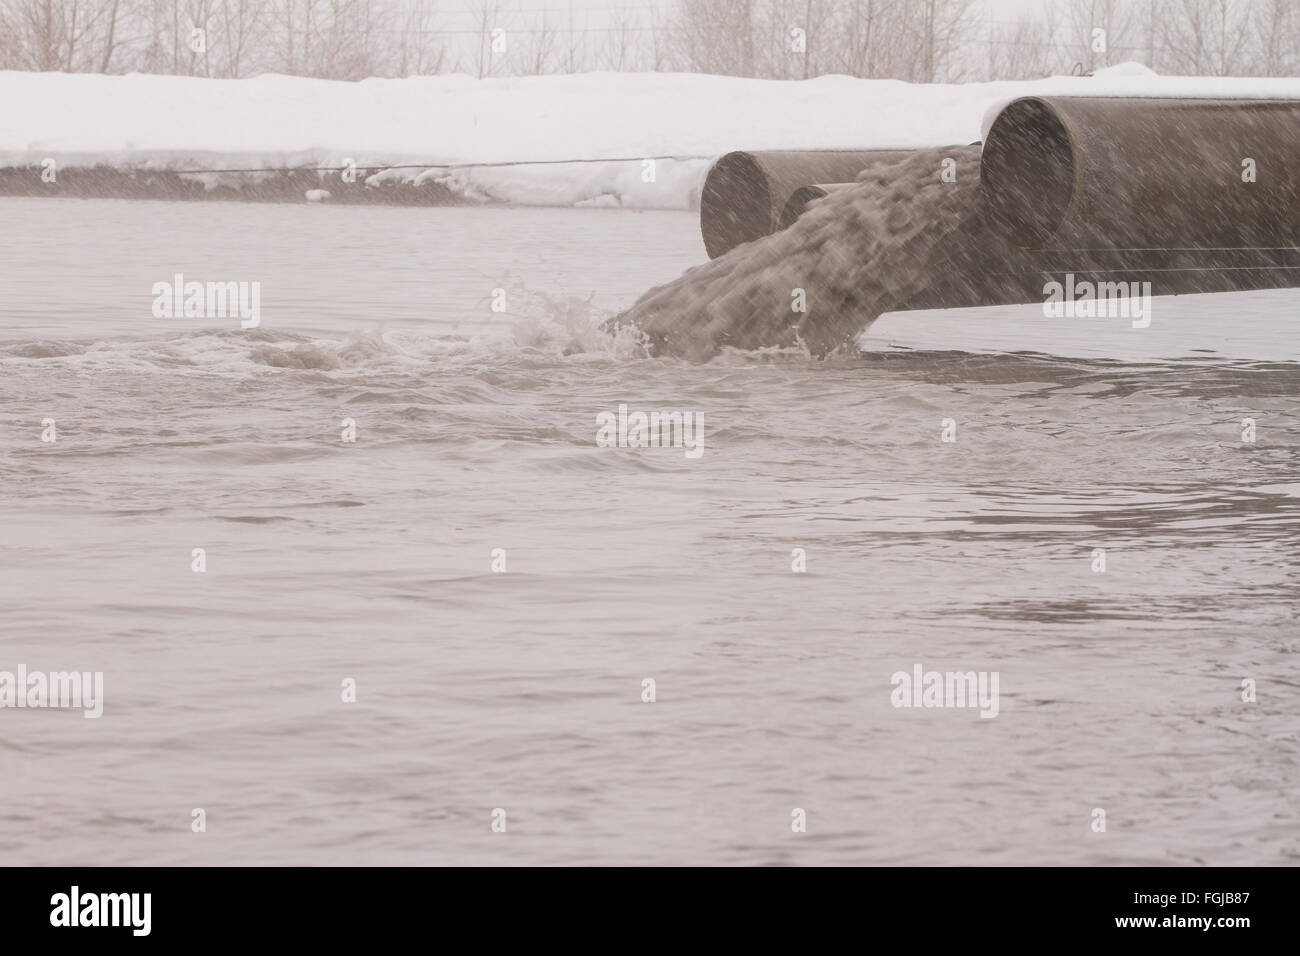 Dirty water discharged into the river, pollution Stock Photo